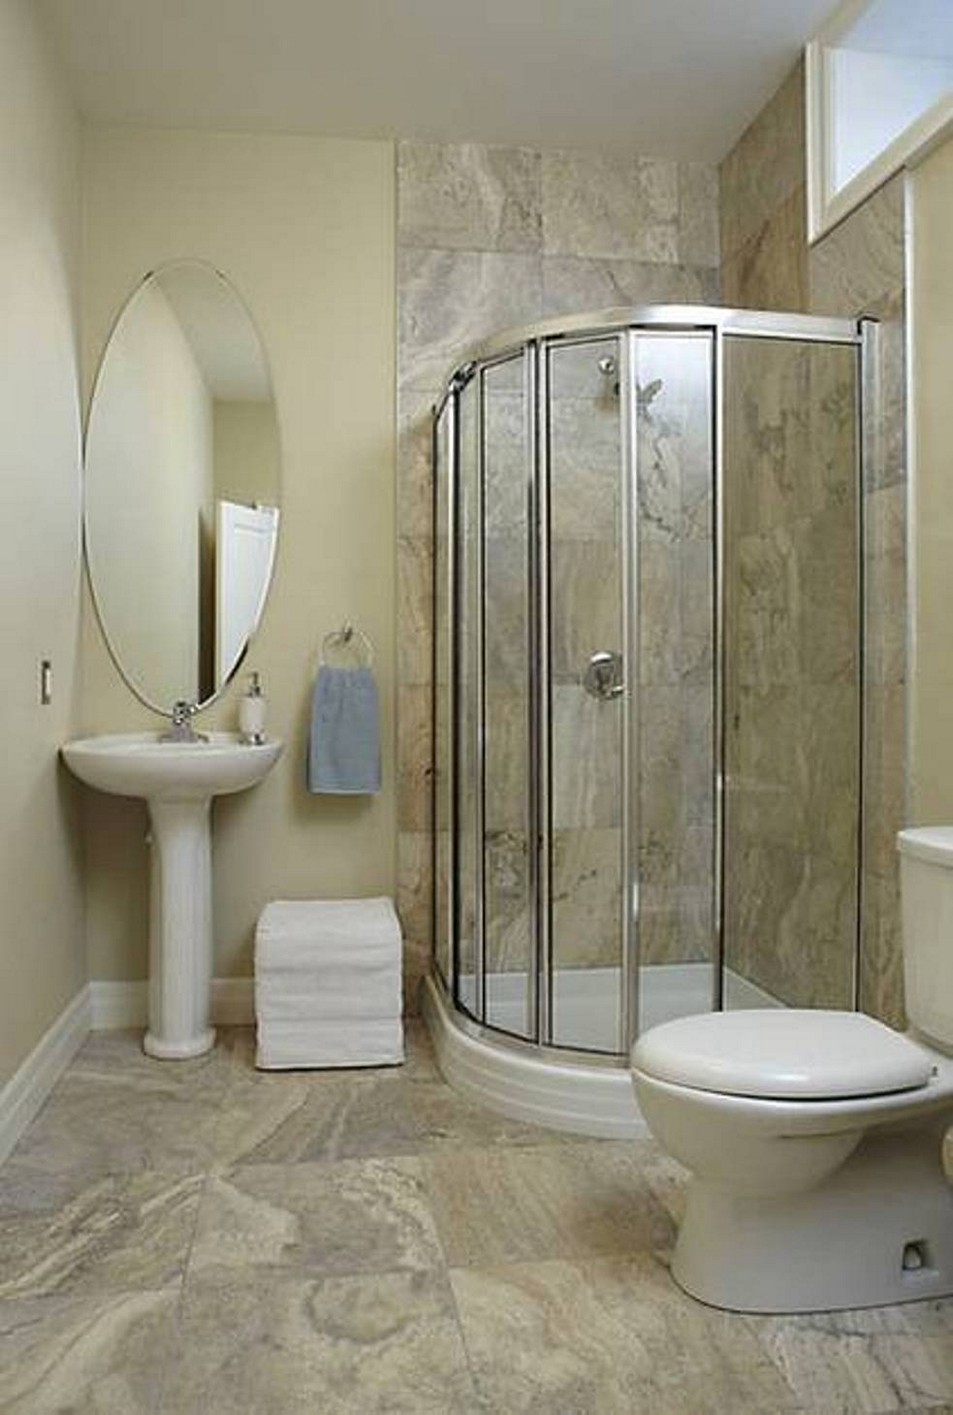 6 Basement Bathroom Ideas for Small Space - Houseminds